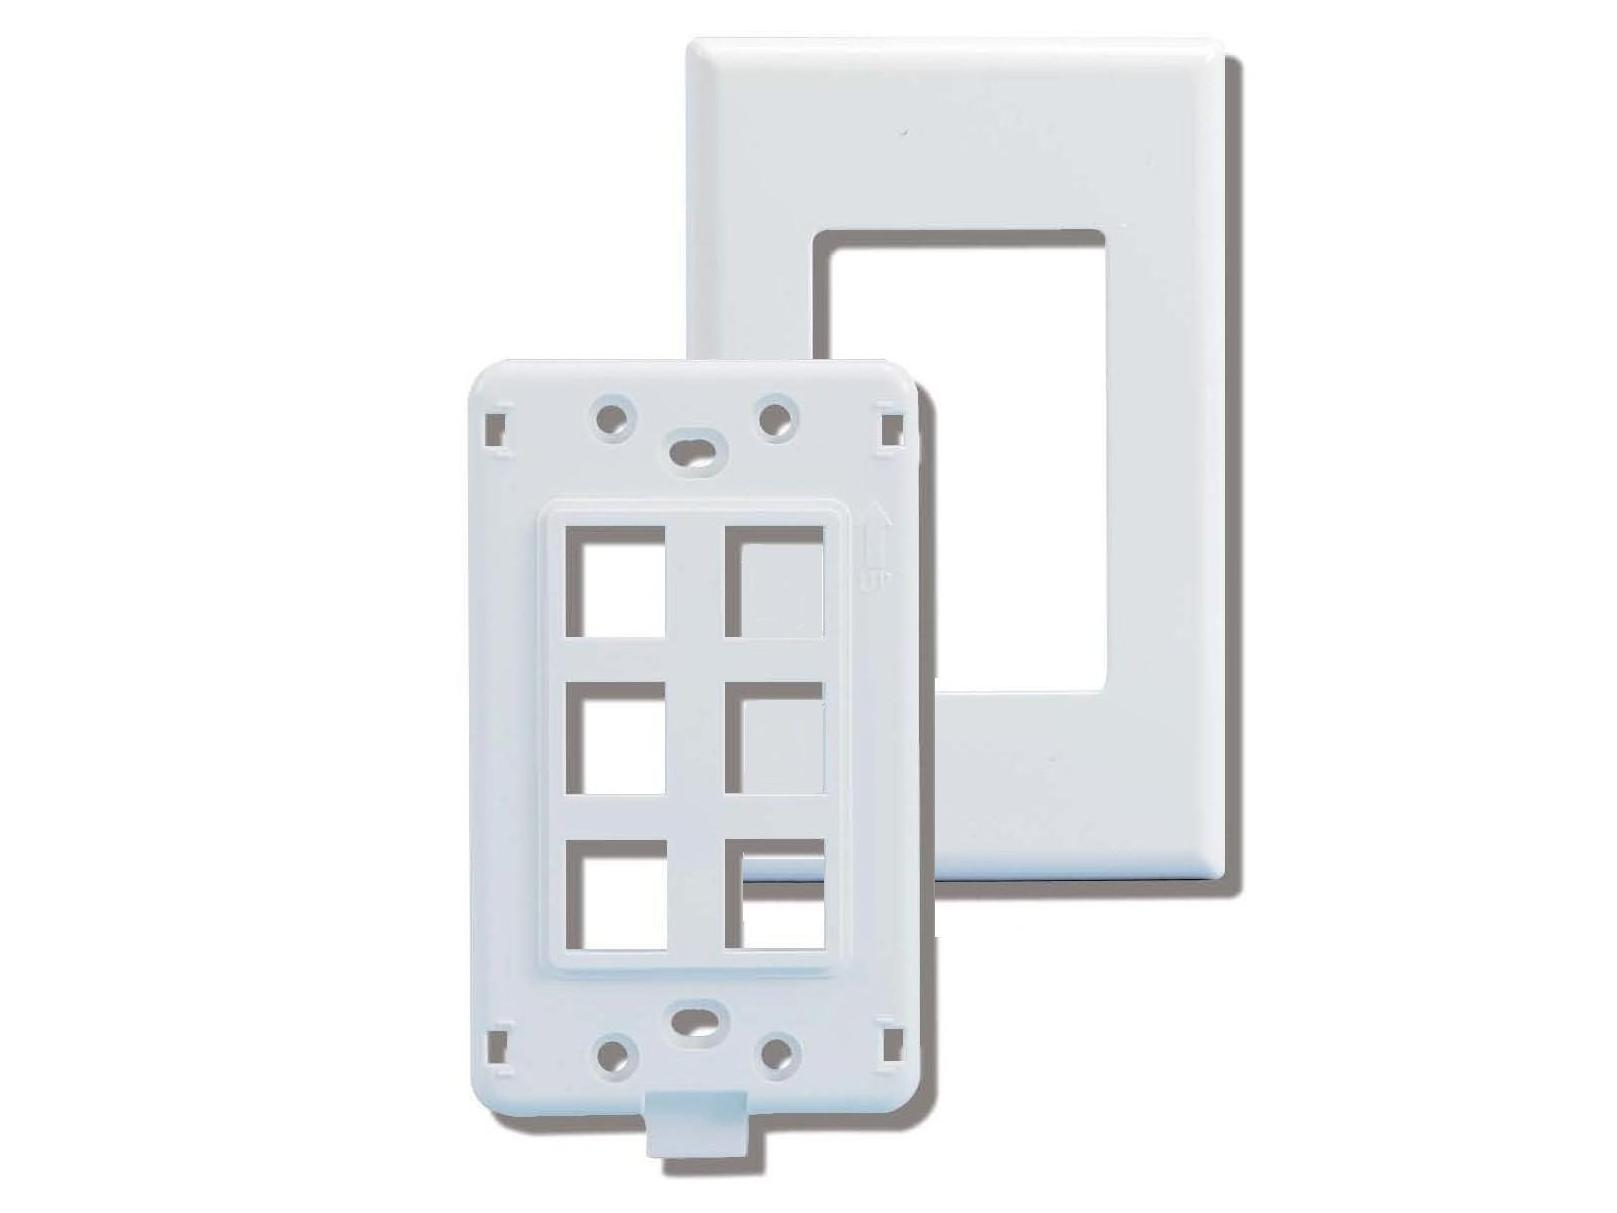 screwless wallplates